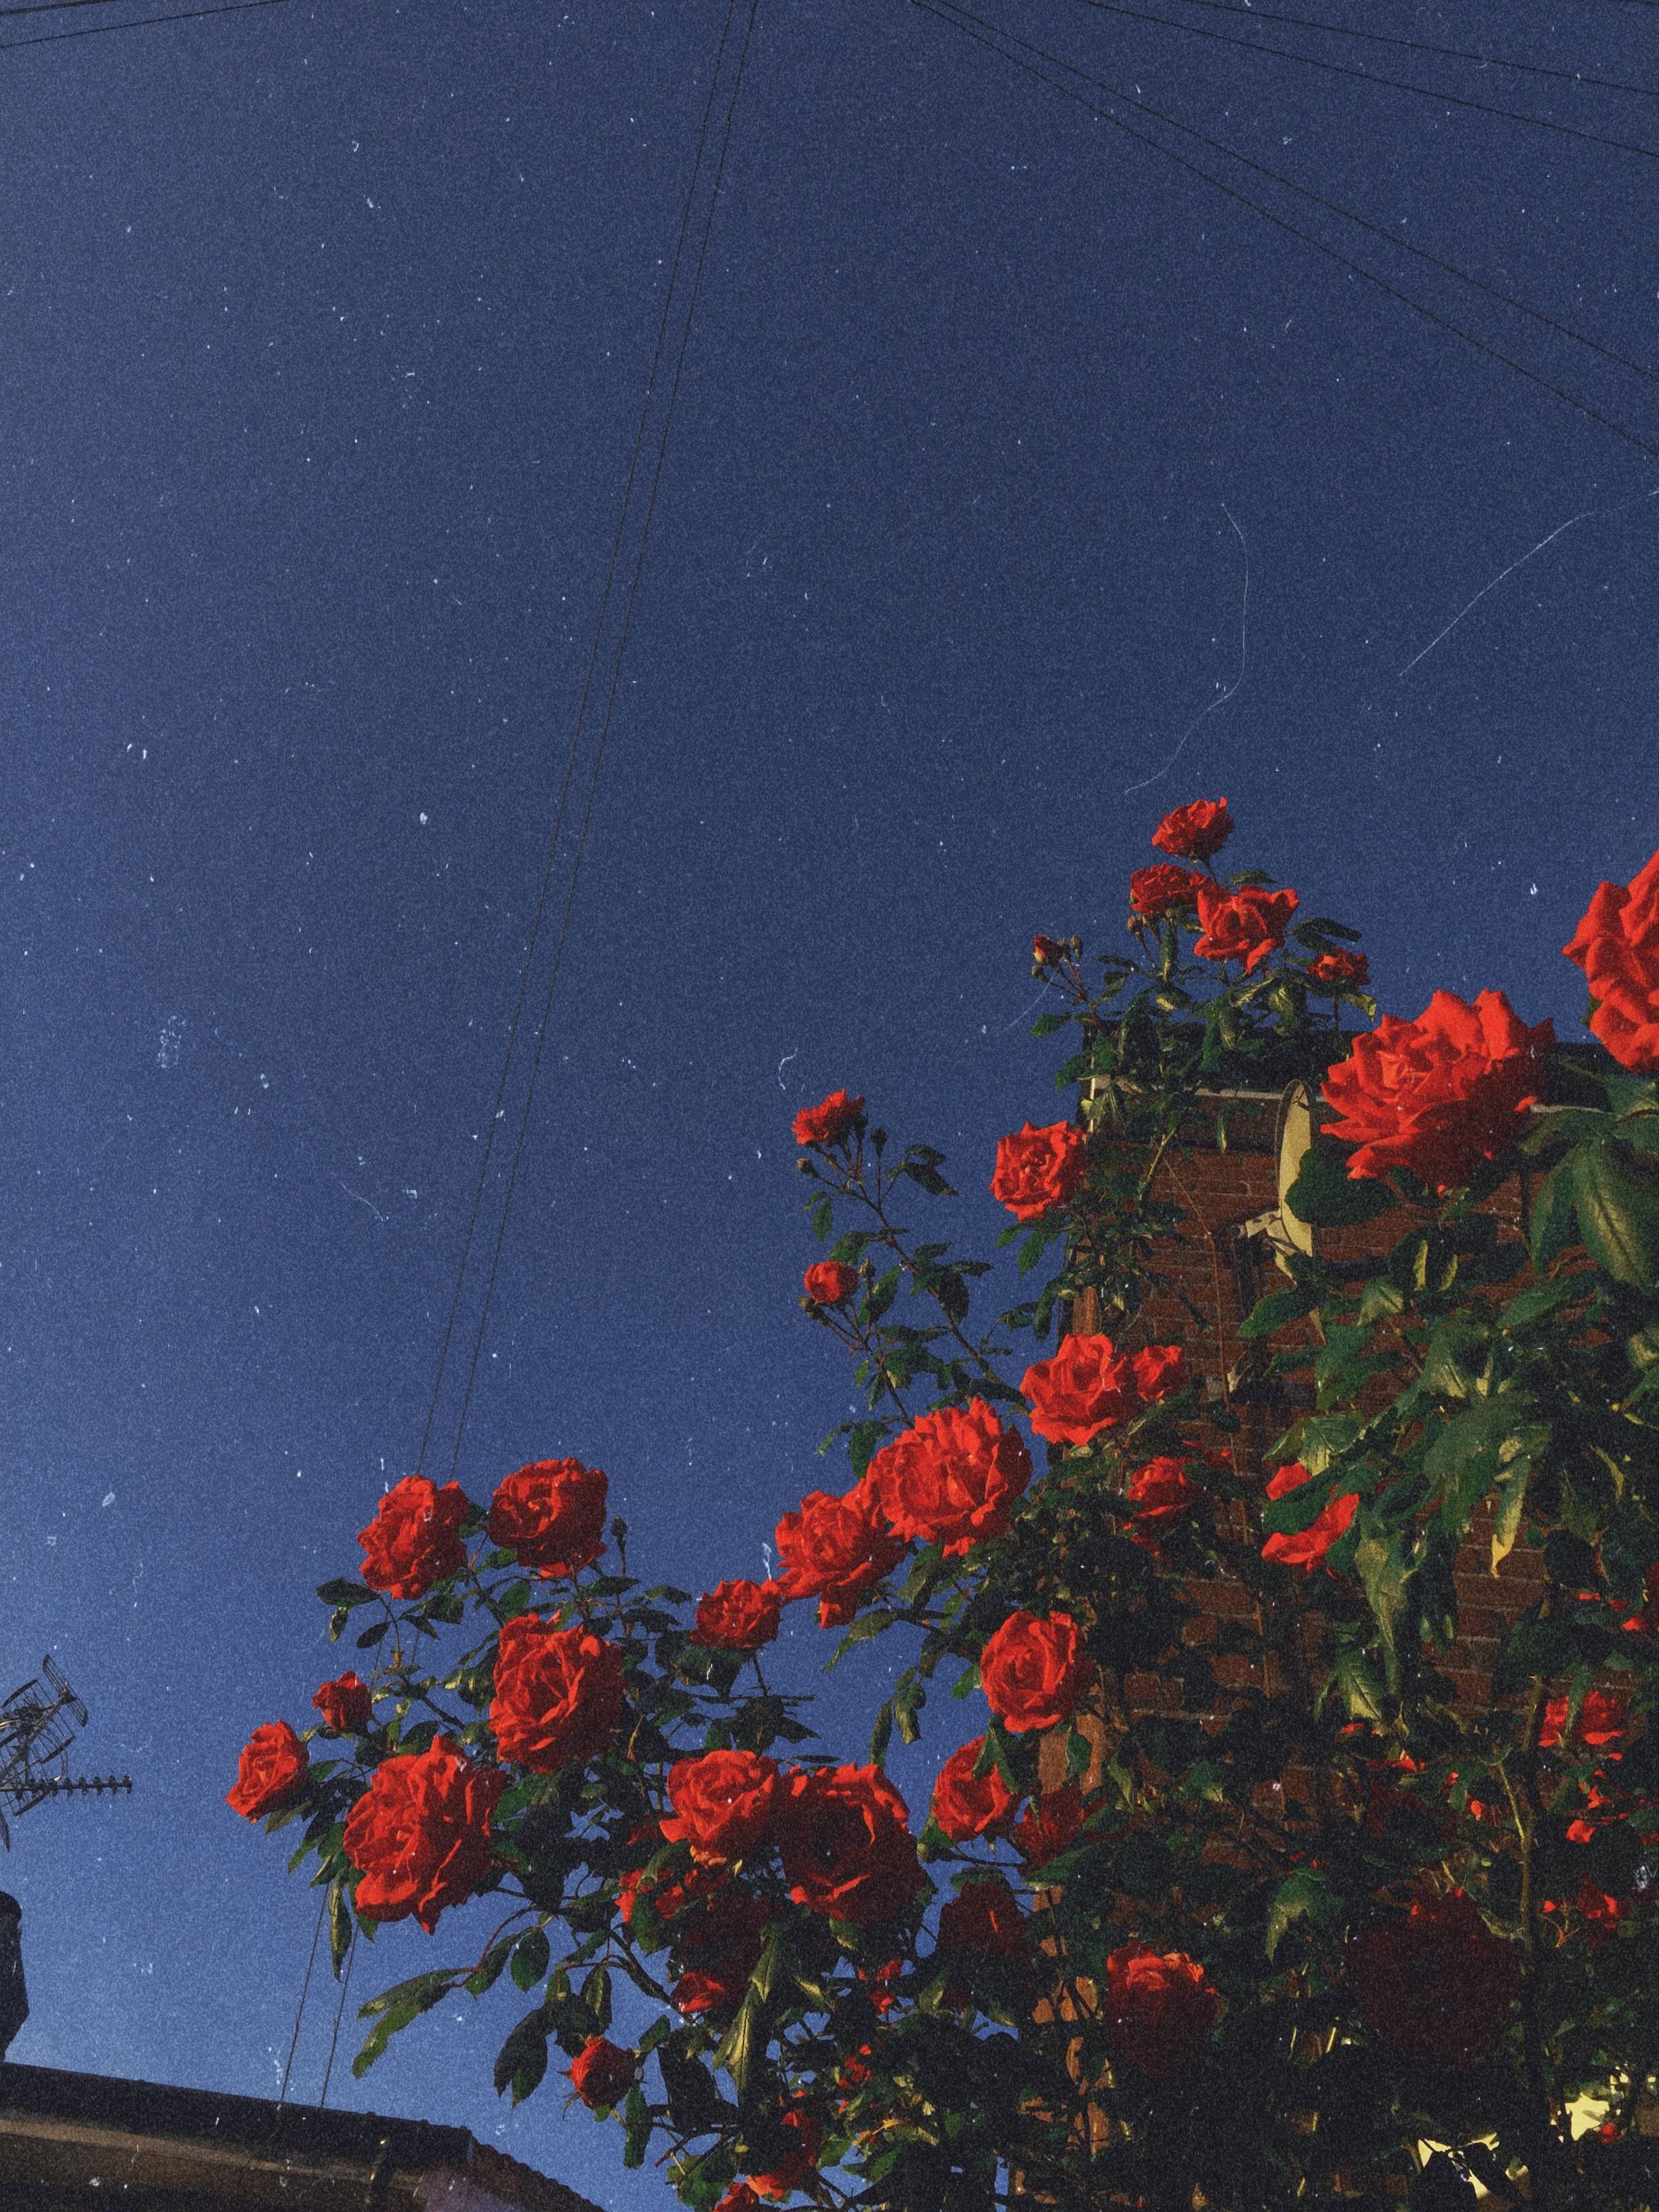 Vintage Aesthetic Pictures Google Search Flower Aesthetic Aesthetic Backgrounds Aesthetic Colors